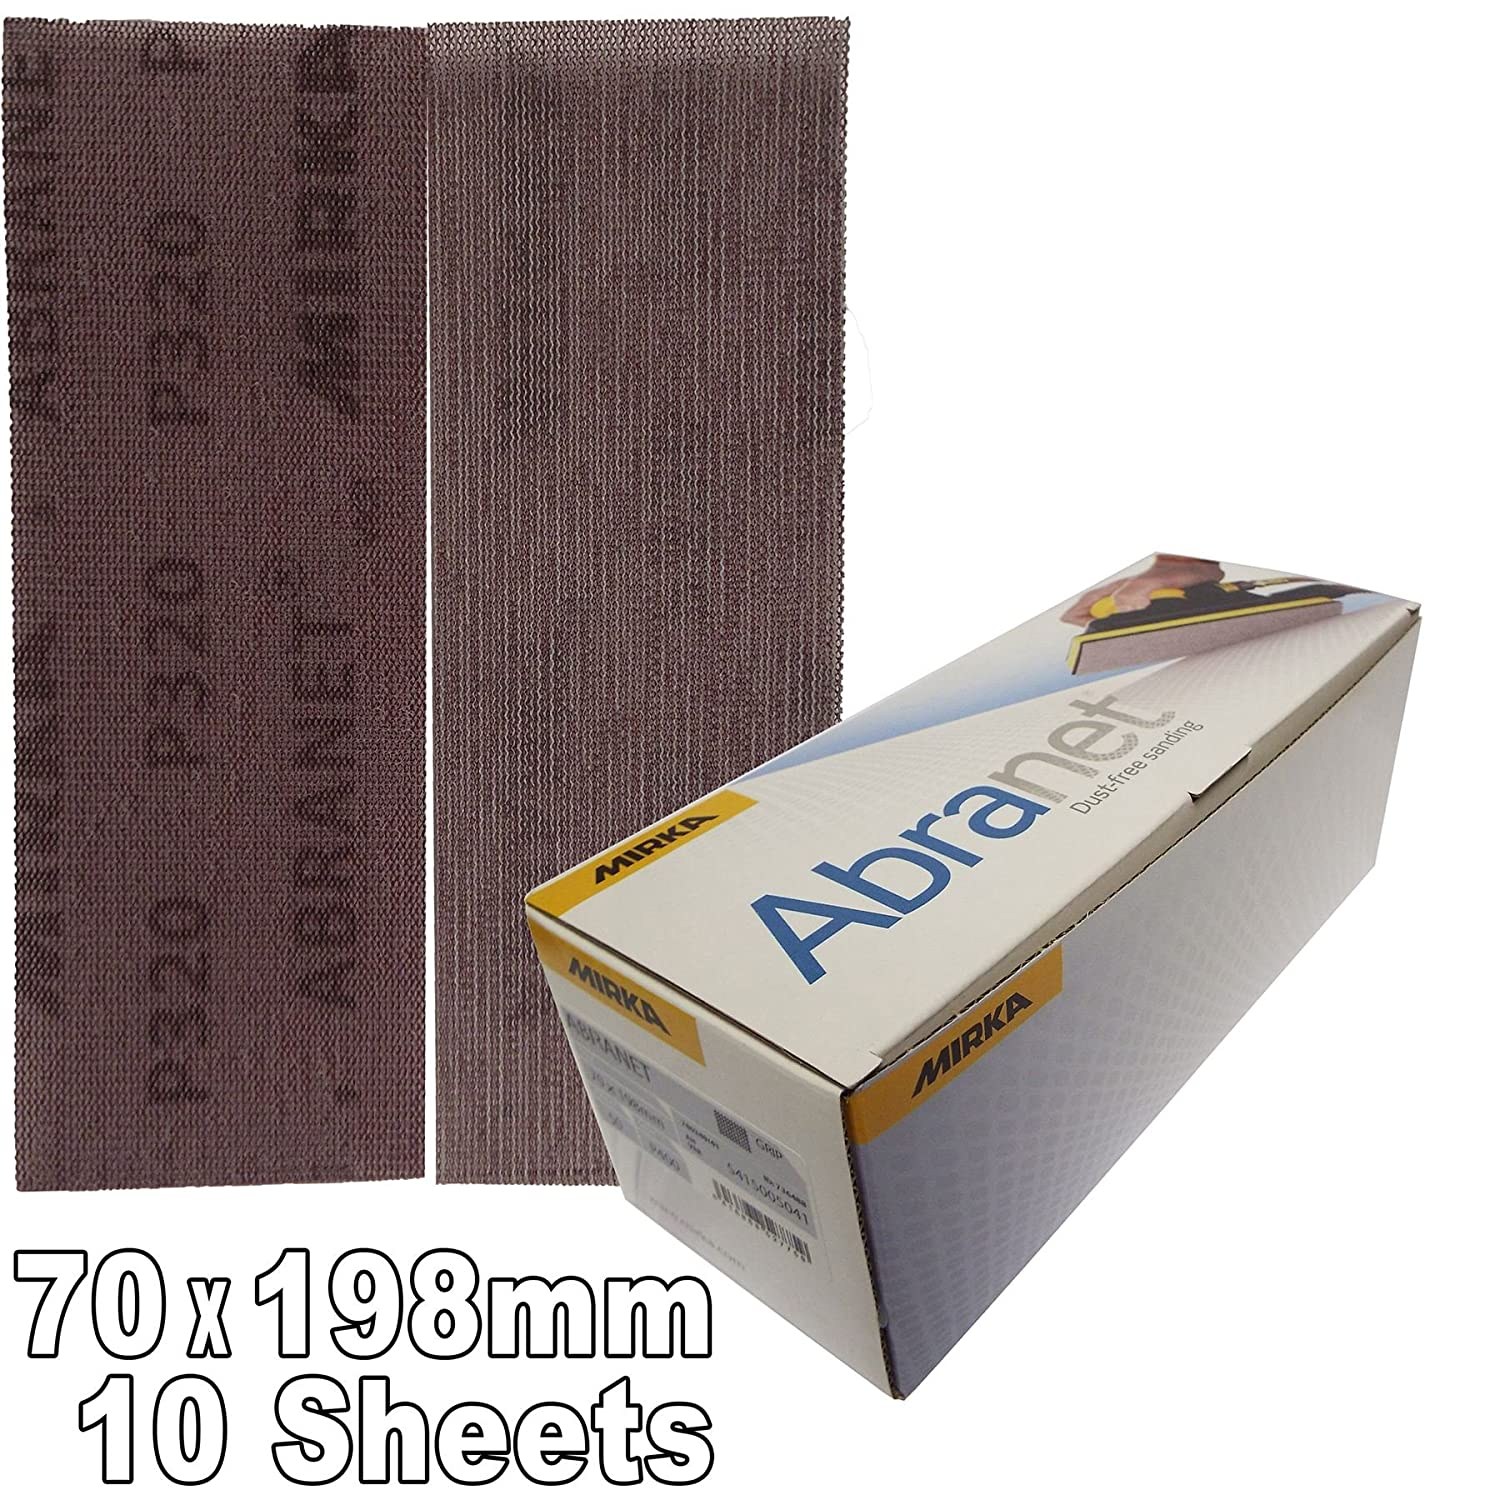 Mirka 5415005032 P320 Grit Abranet Abrasive Velcro Hook-it Sanding Strips Pack of 10 70mm x 198mm P320 Grit 70x198mm dust free, results in a very uniform scratch pattern leaving an ultra smooth finish